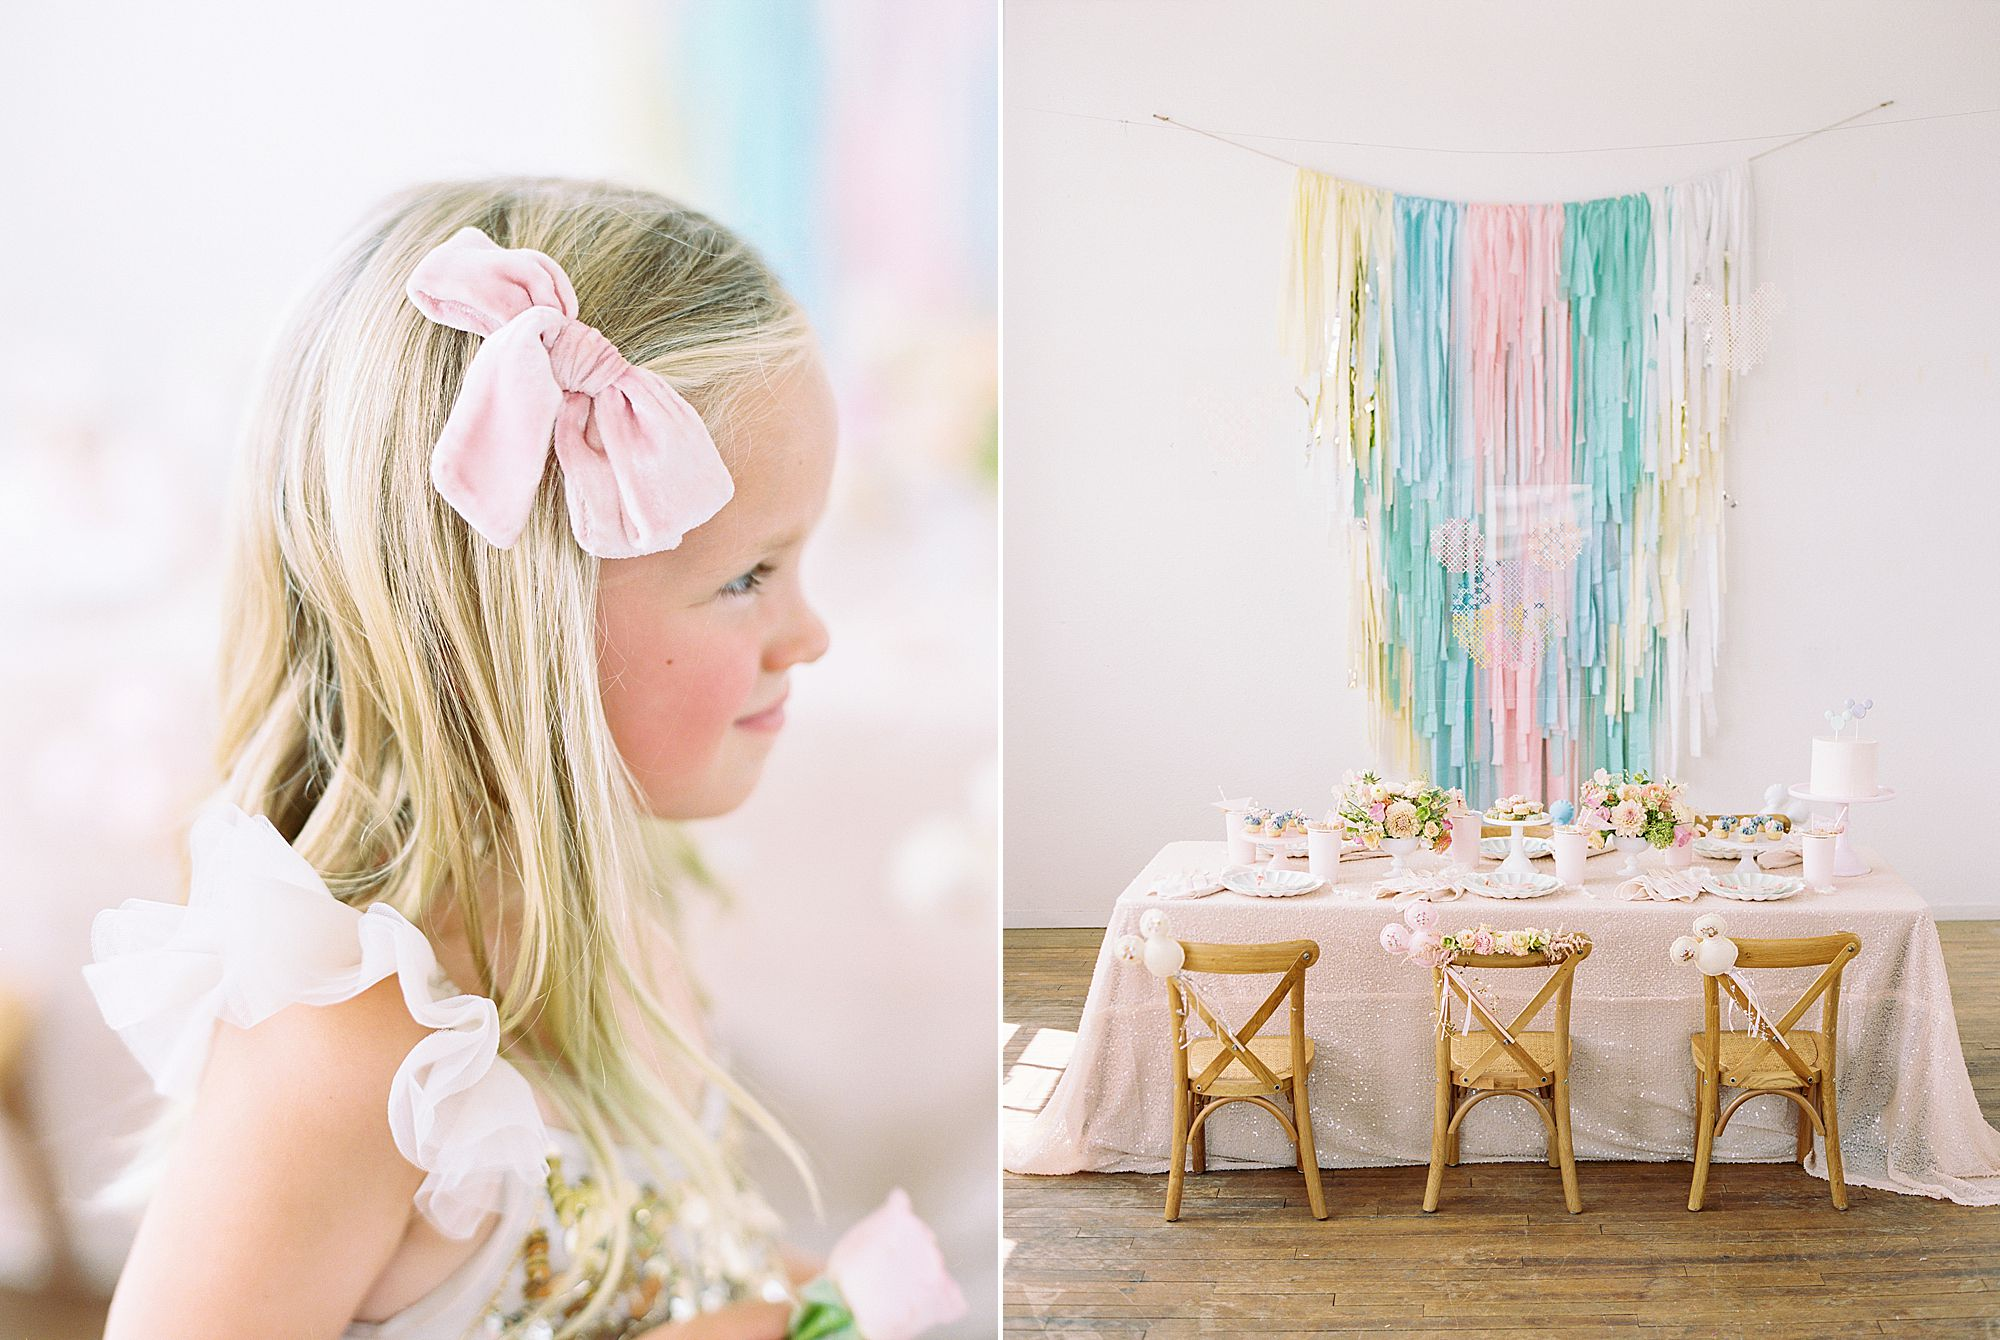 Vintage Disney Birthday Party for Princess Nora's Fourth Birthday - Featured on 100 Layer Cake - Ashley Baumgartner - Parker Grace Events_0028.jpg